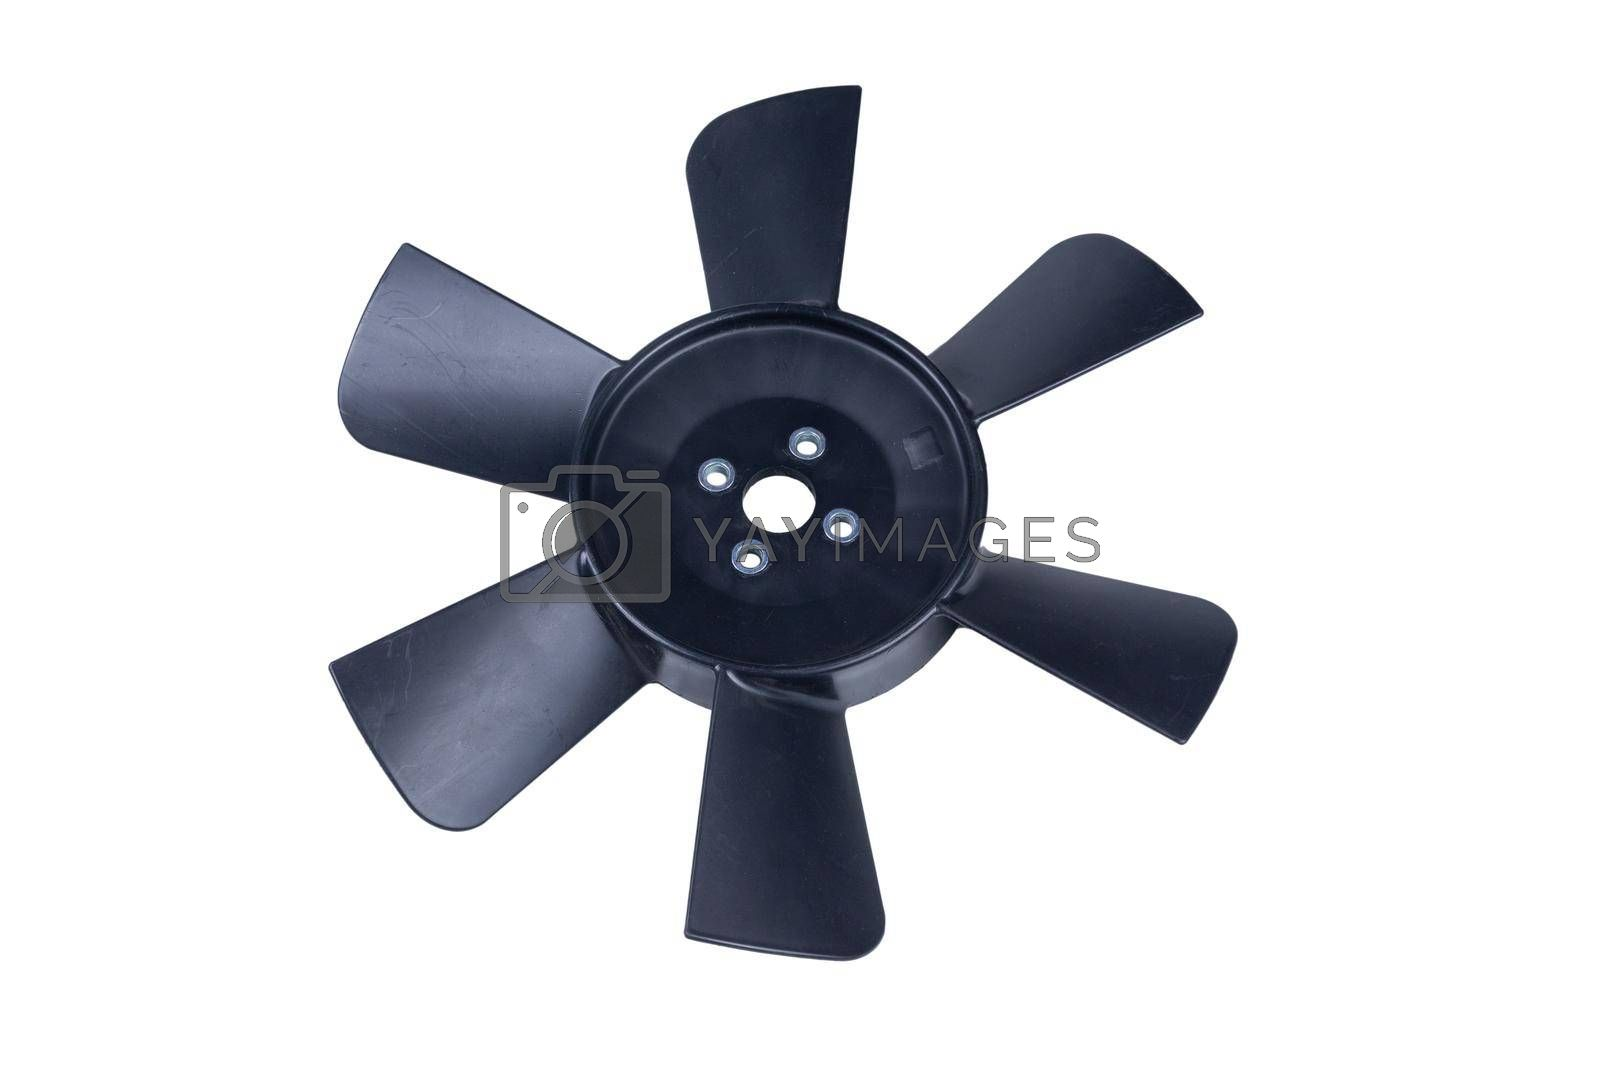 Royalty free image of new plastic fan impeller of a radiator of the internal combustion engine, black color, isolated on white background by forester